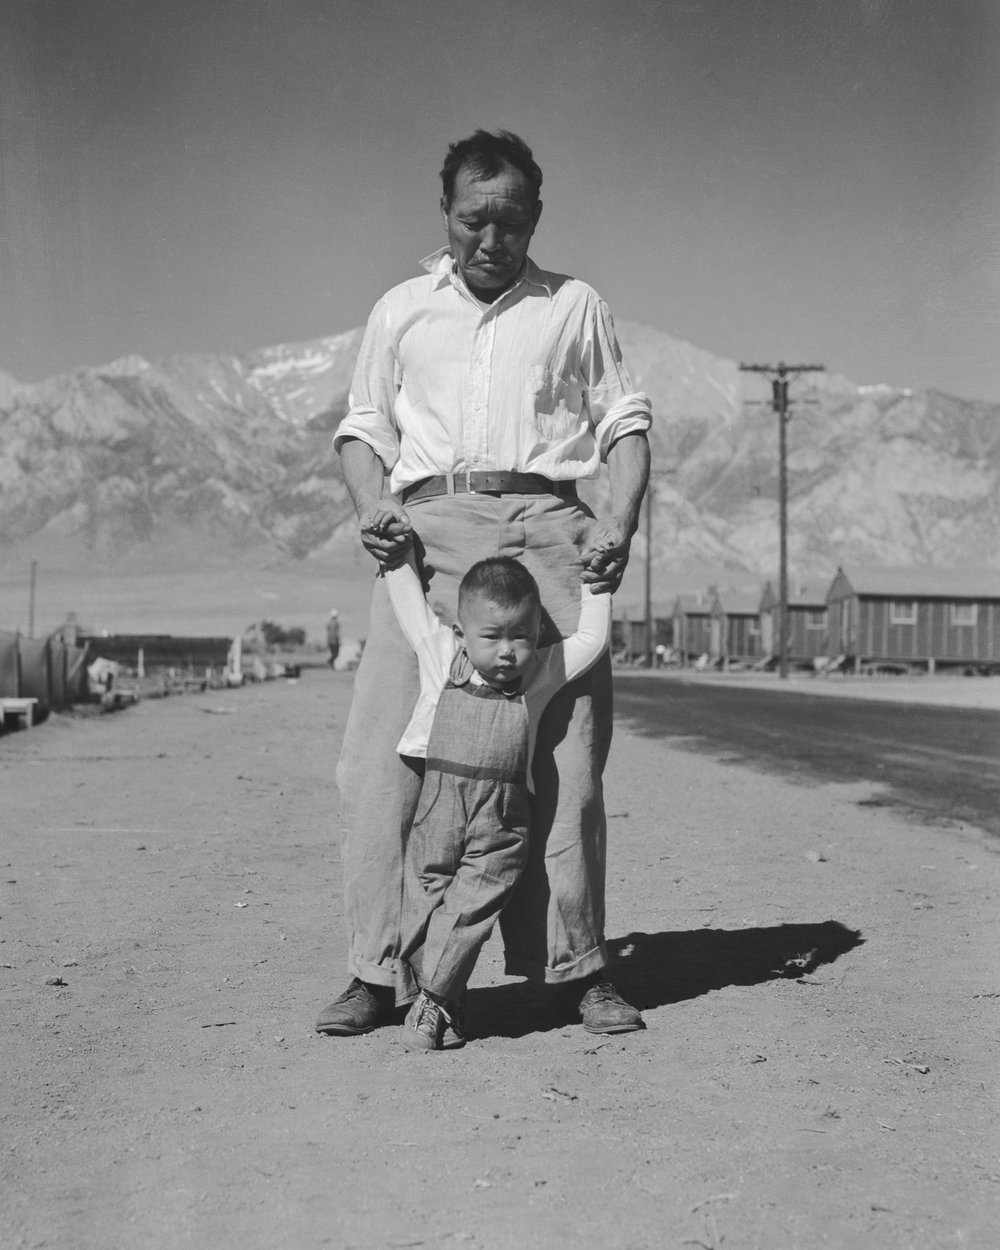 PRINT AVAILABLE   July 2, 1942 — Manzanar Relocation Center, Manzanar, California. Grandfather of Japanese ancestry teaching his little grandson to walk at this War Relocation Authority center for evacuees.